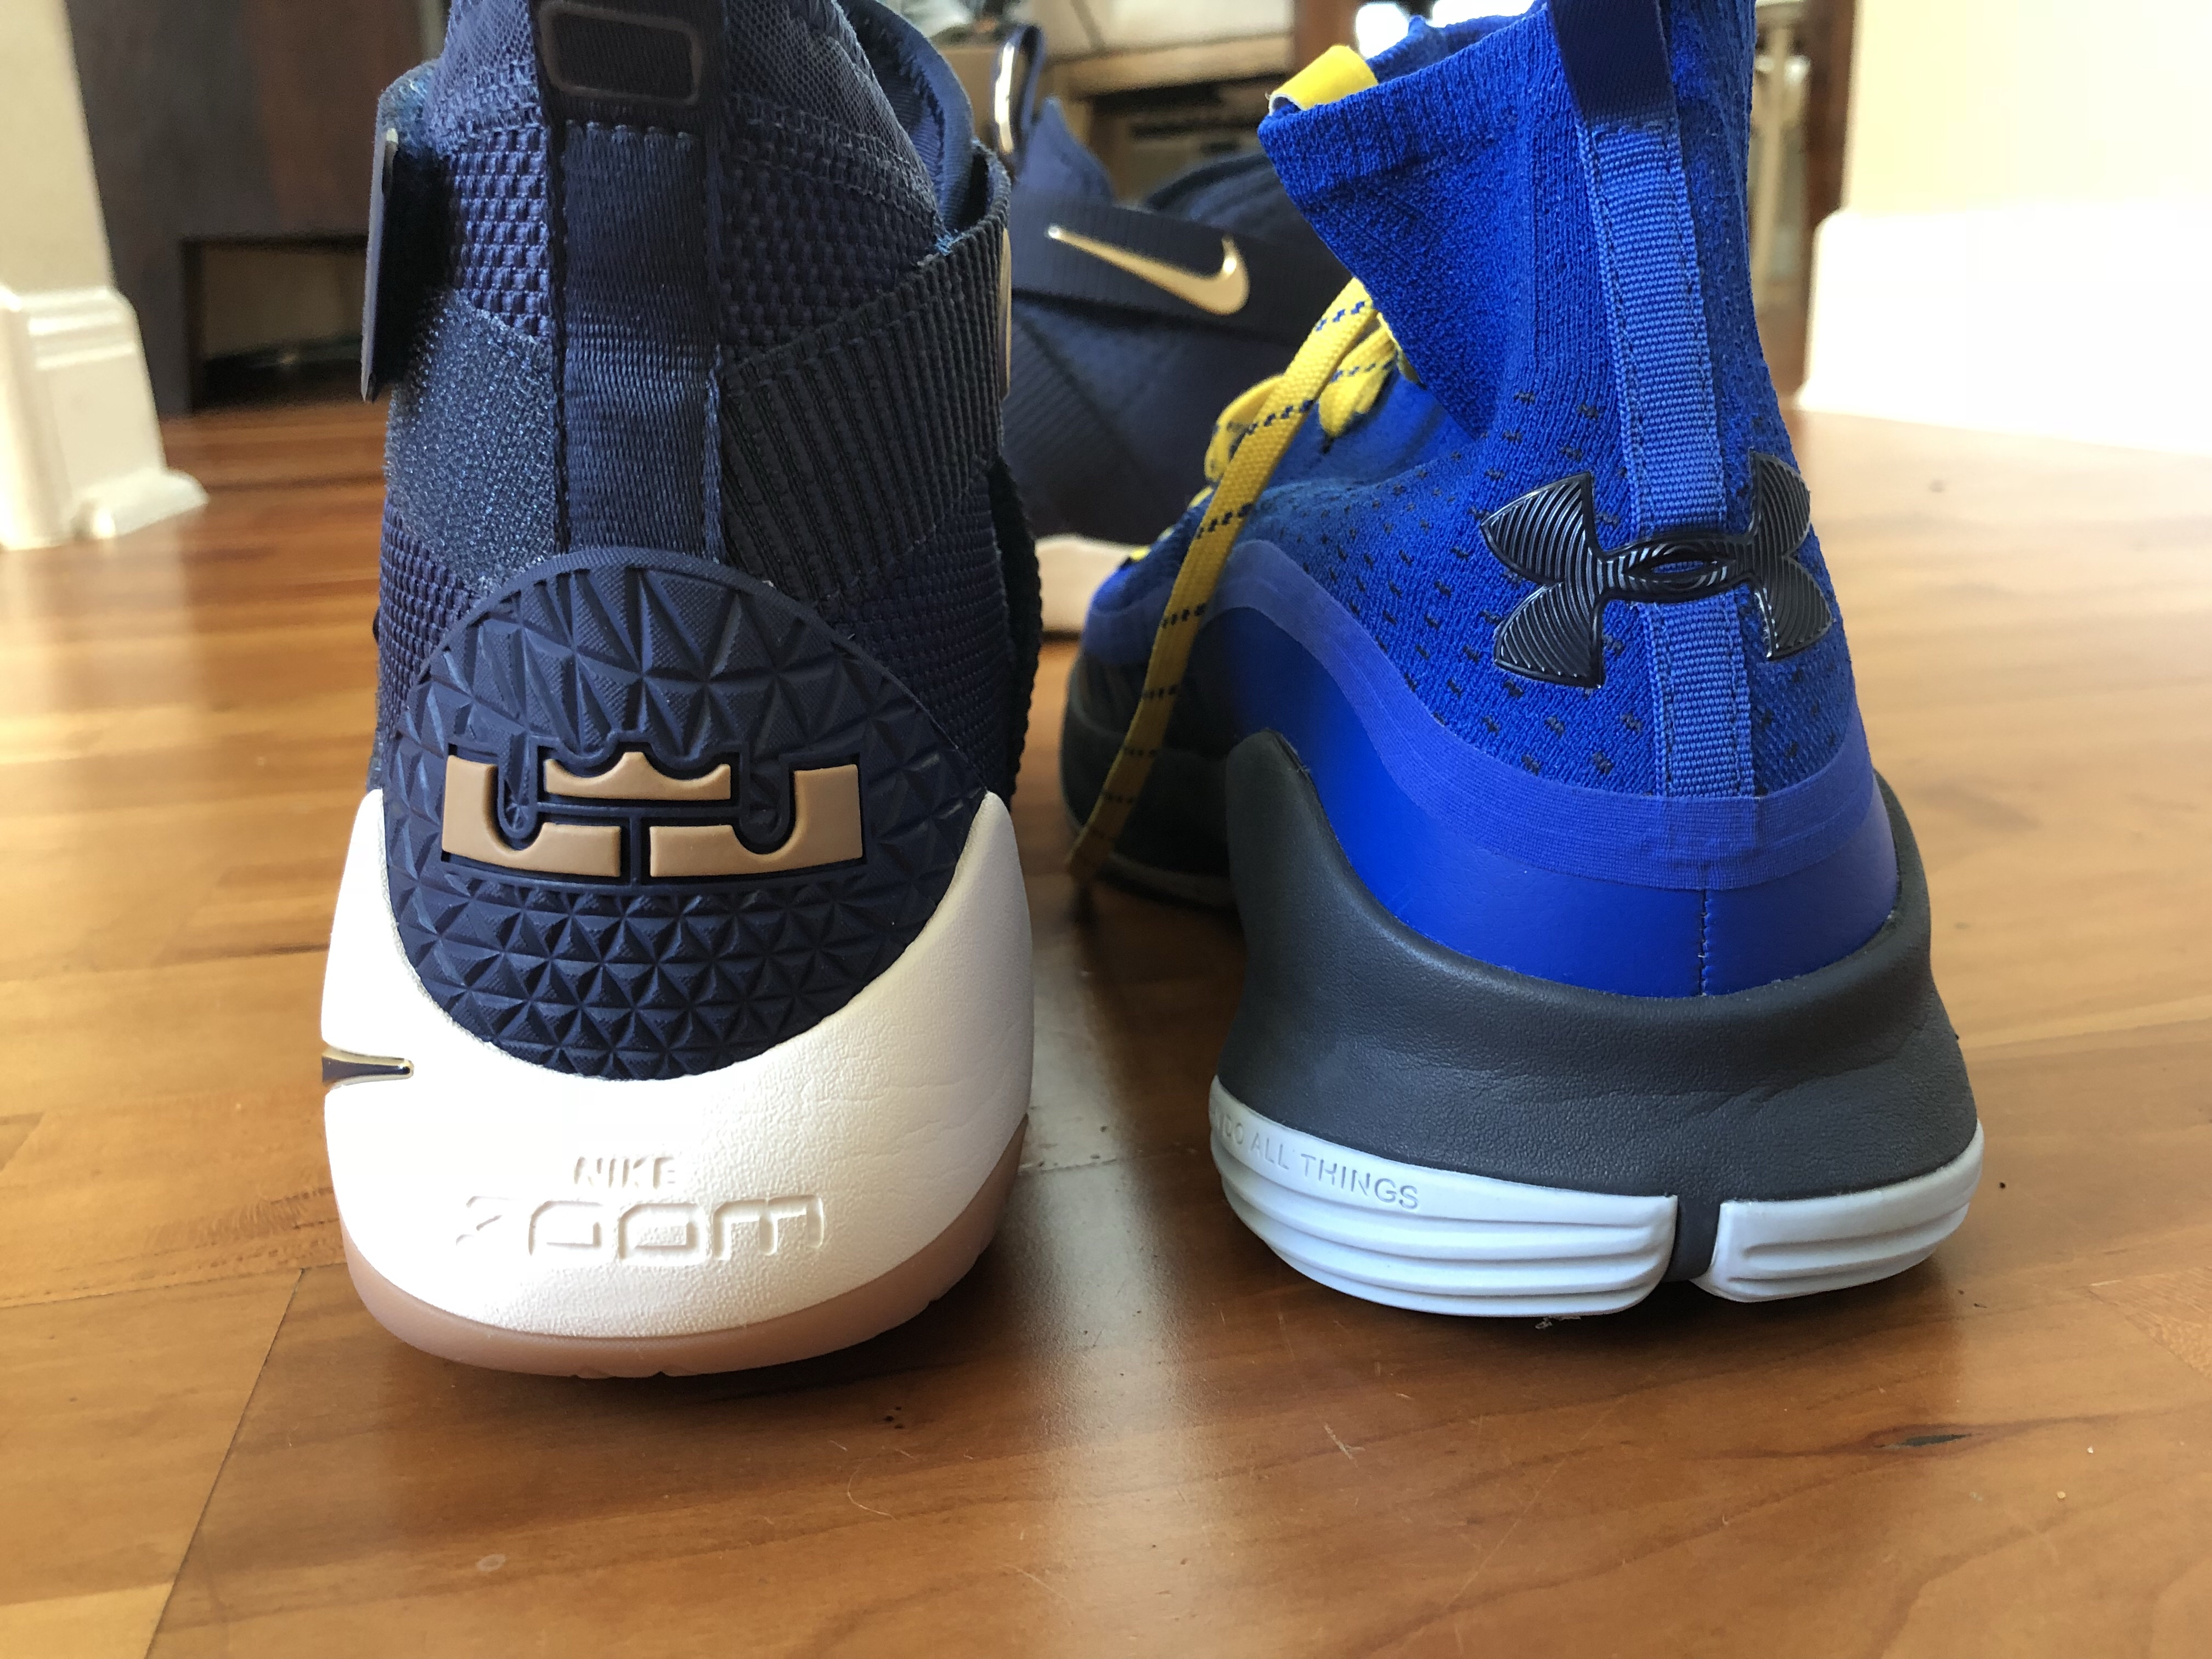 3e3b25c24e03 Support is decent but majority of the support comes from the fit and the  contoured midsole. The actual heel counter is real tiny and flexible unlike  the ...